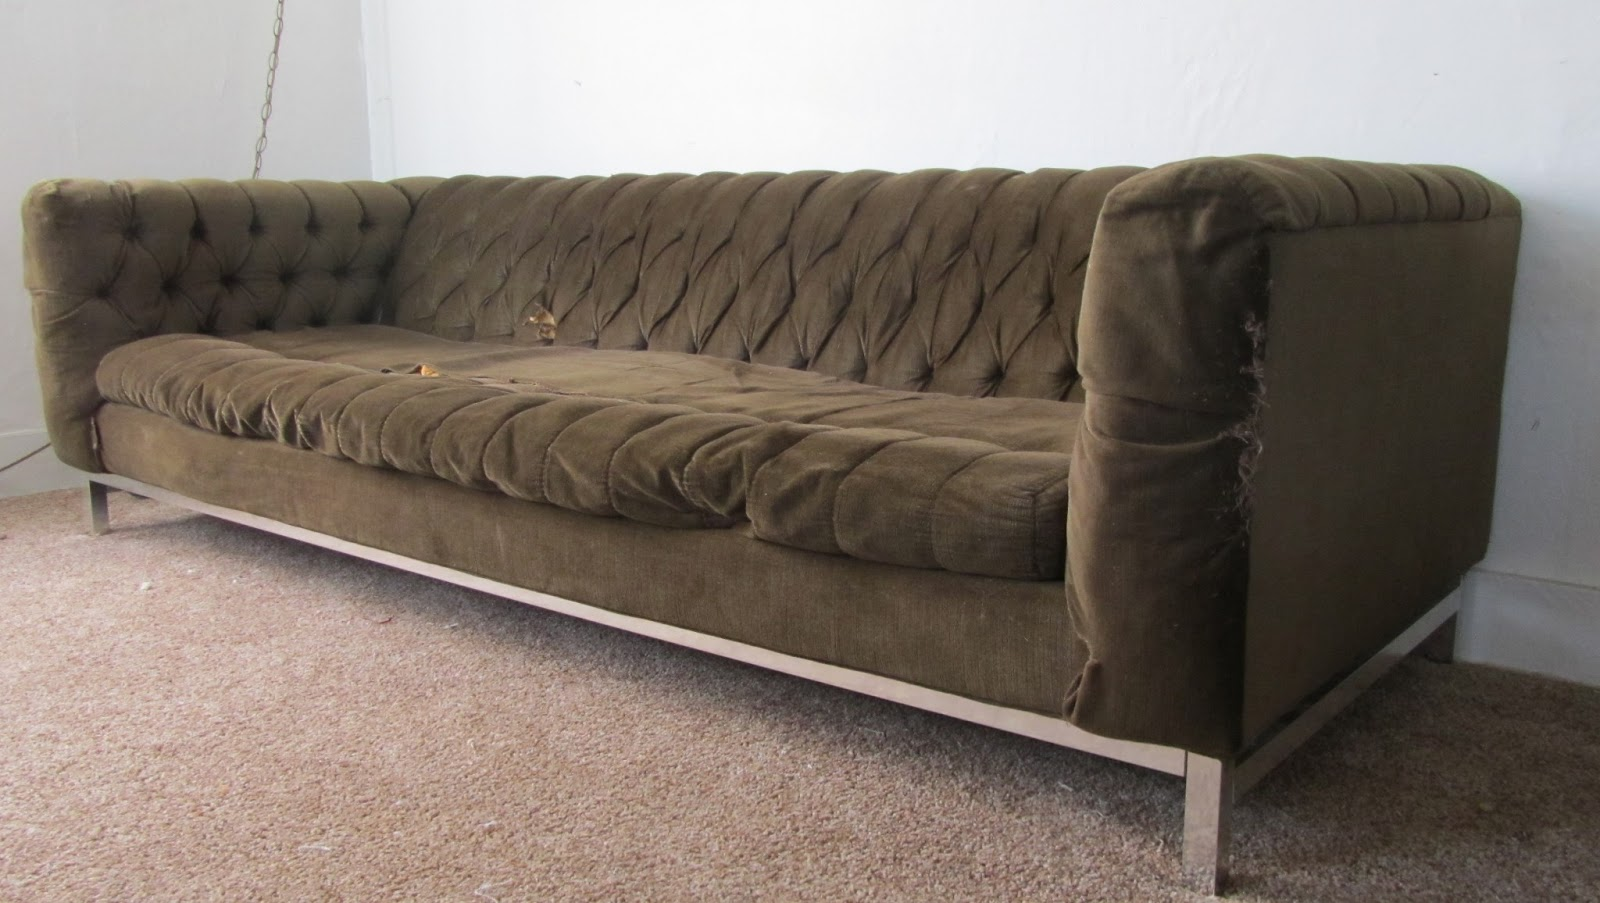 reupholster sofa in leather remove felt pen from remnant reupholstered chesterfield style